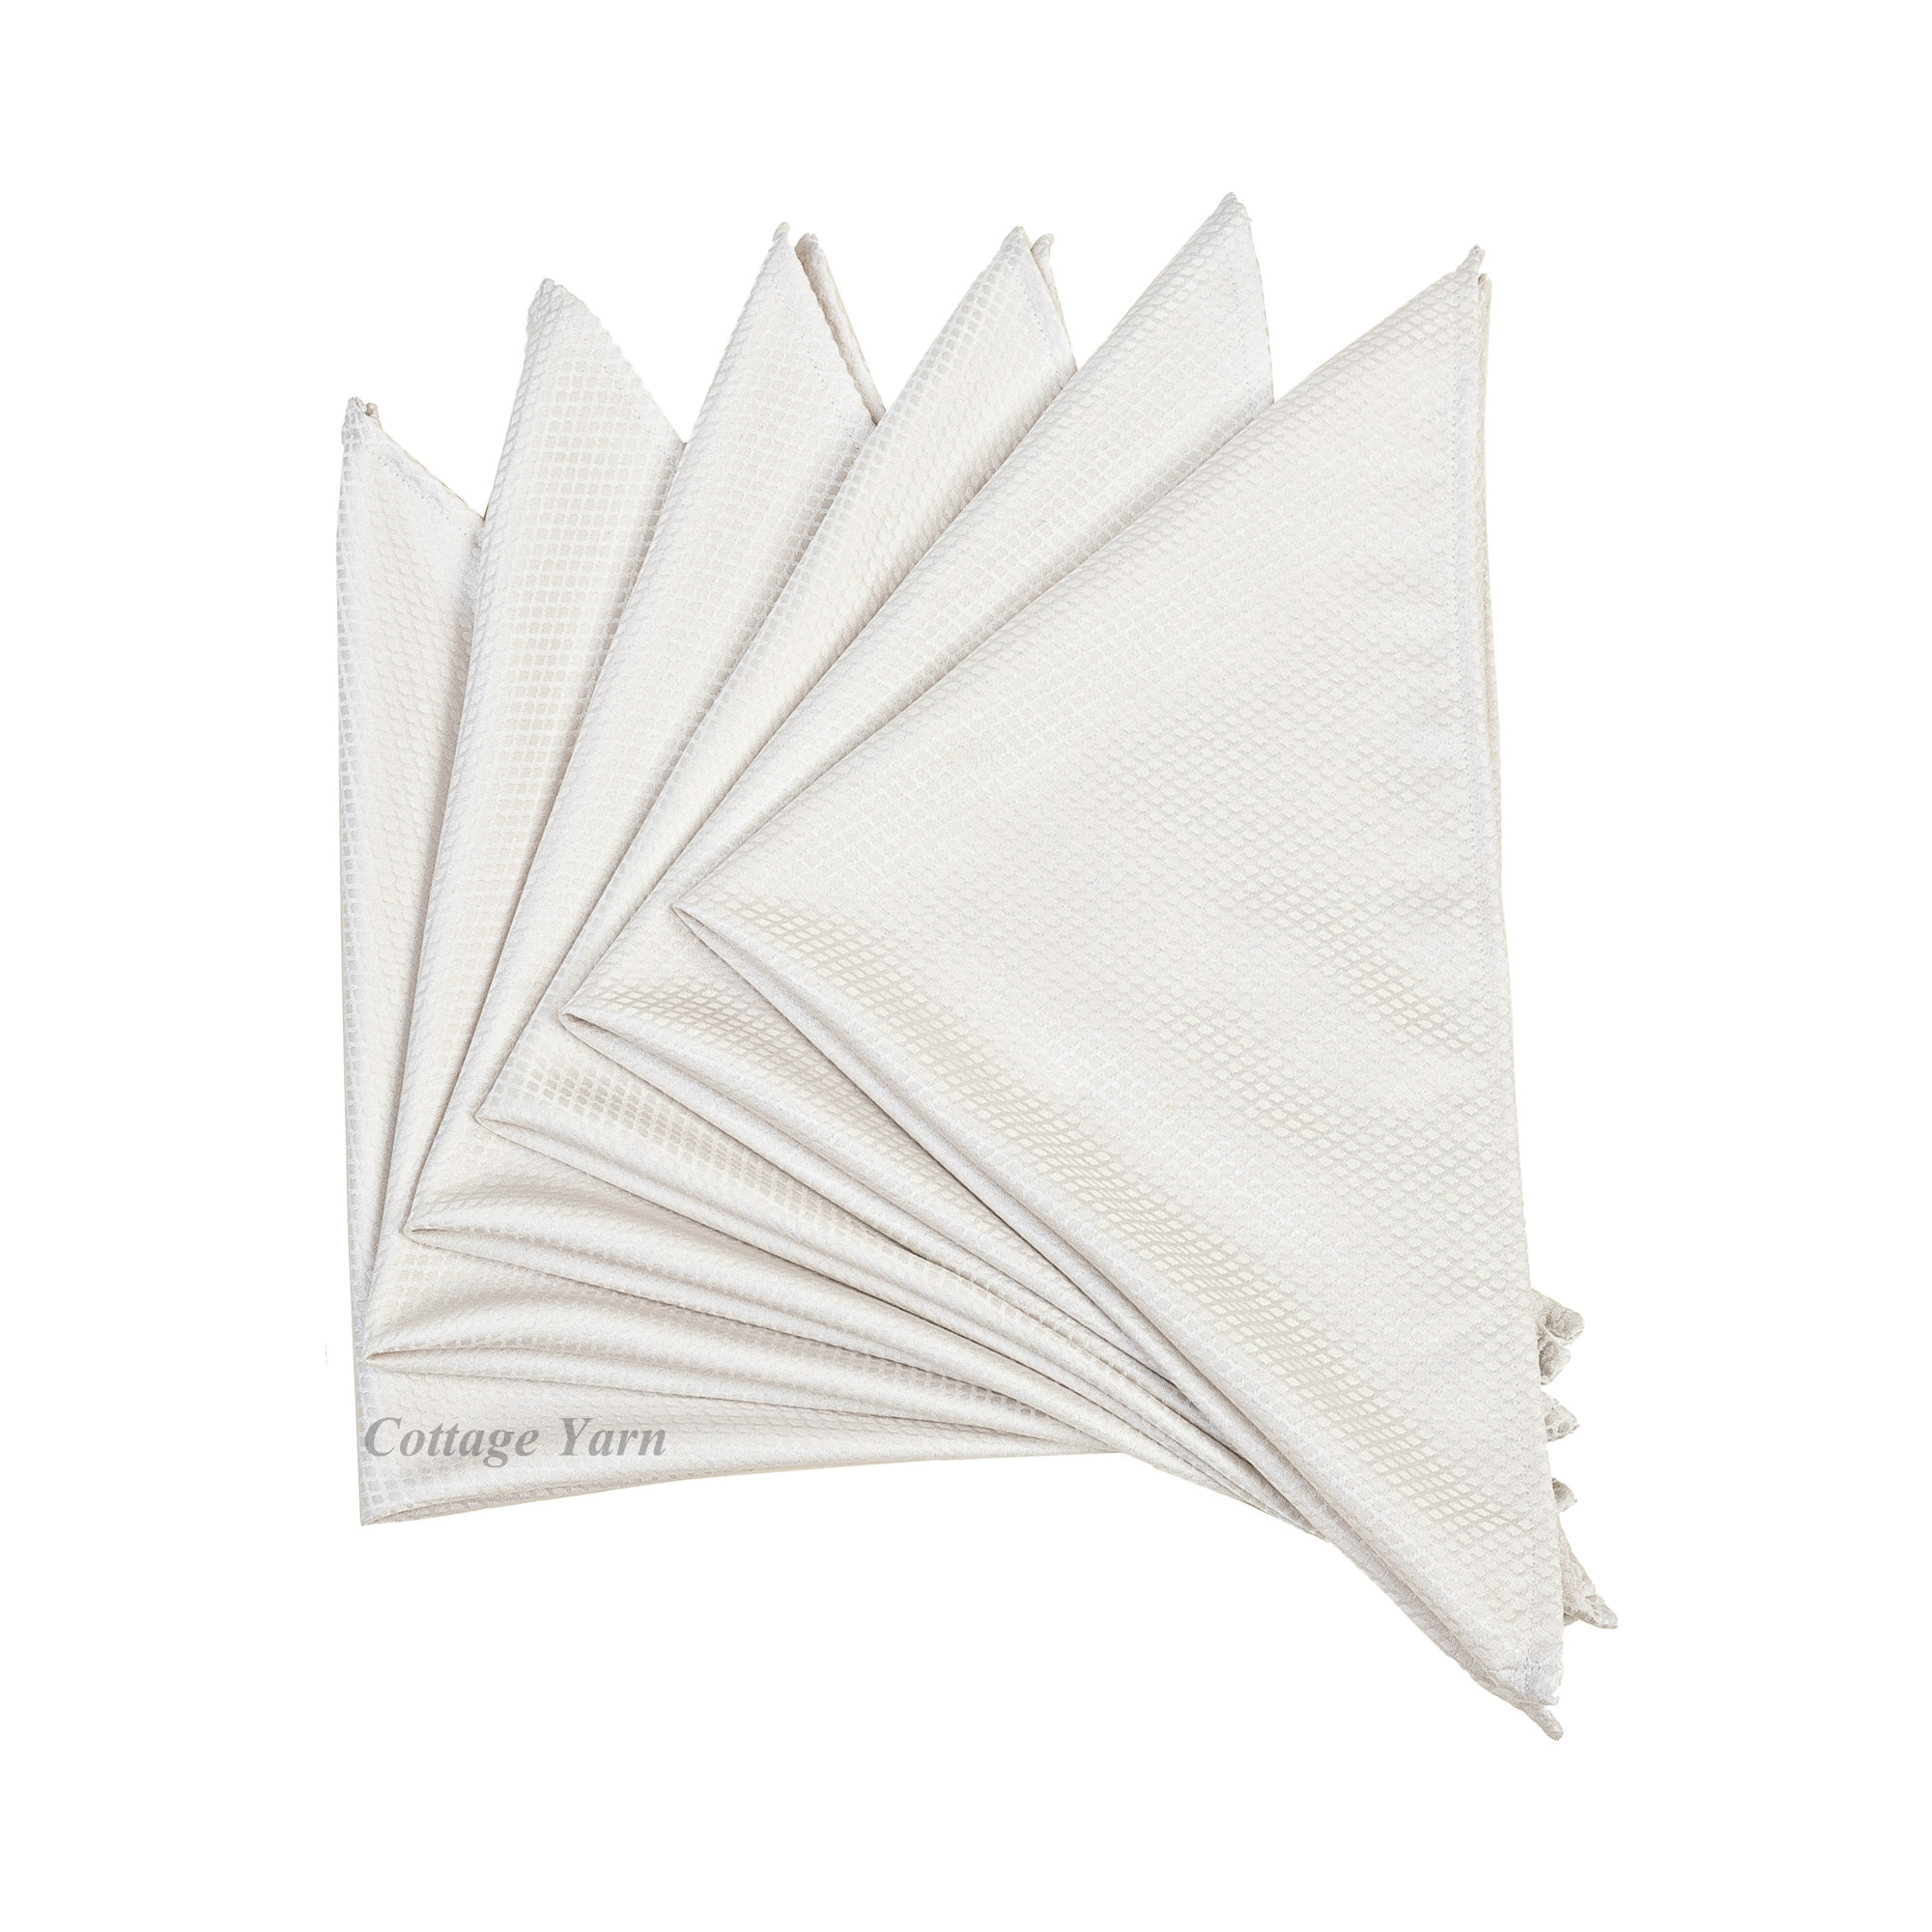 """Silver Diamond Dinner Cloth Table Napkins. Jacquard Polyester Satin 51x51cm/20x20"""". Pack of 2,4,6 or 10(Silver)"""